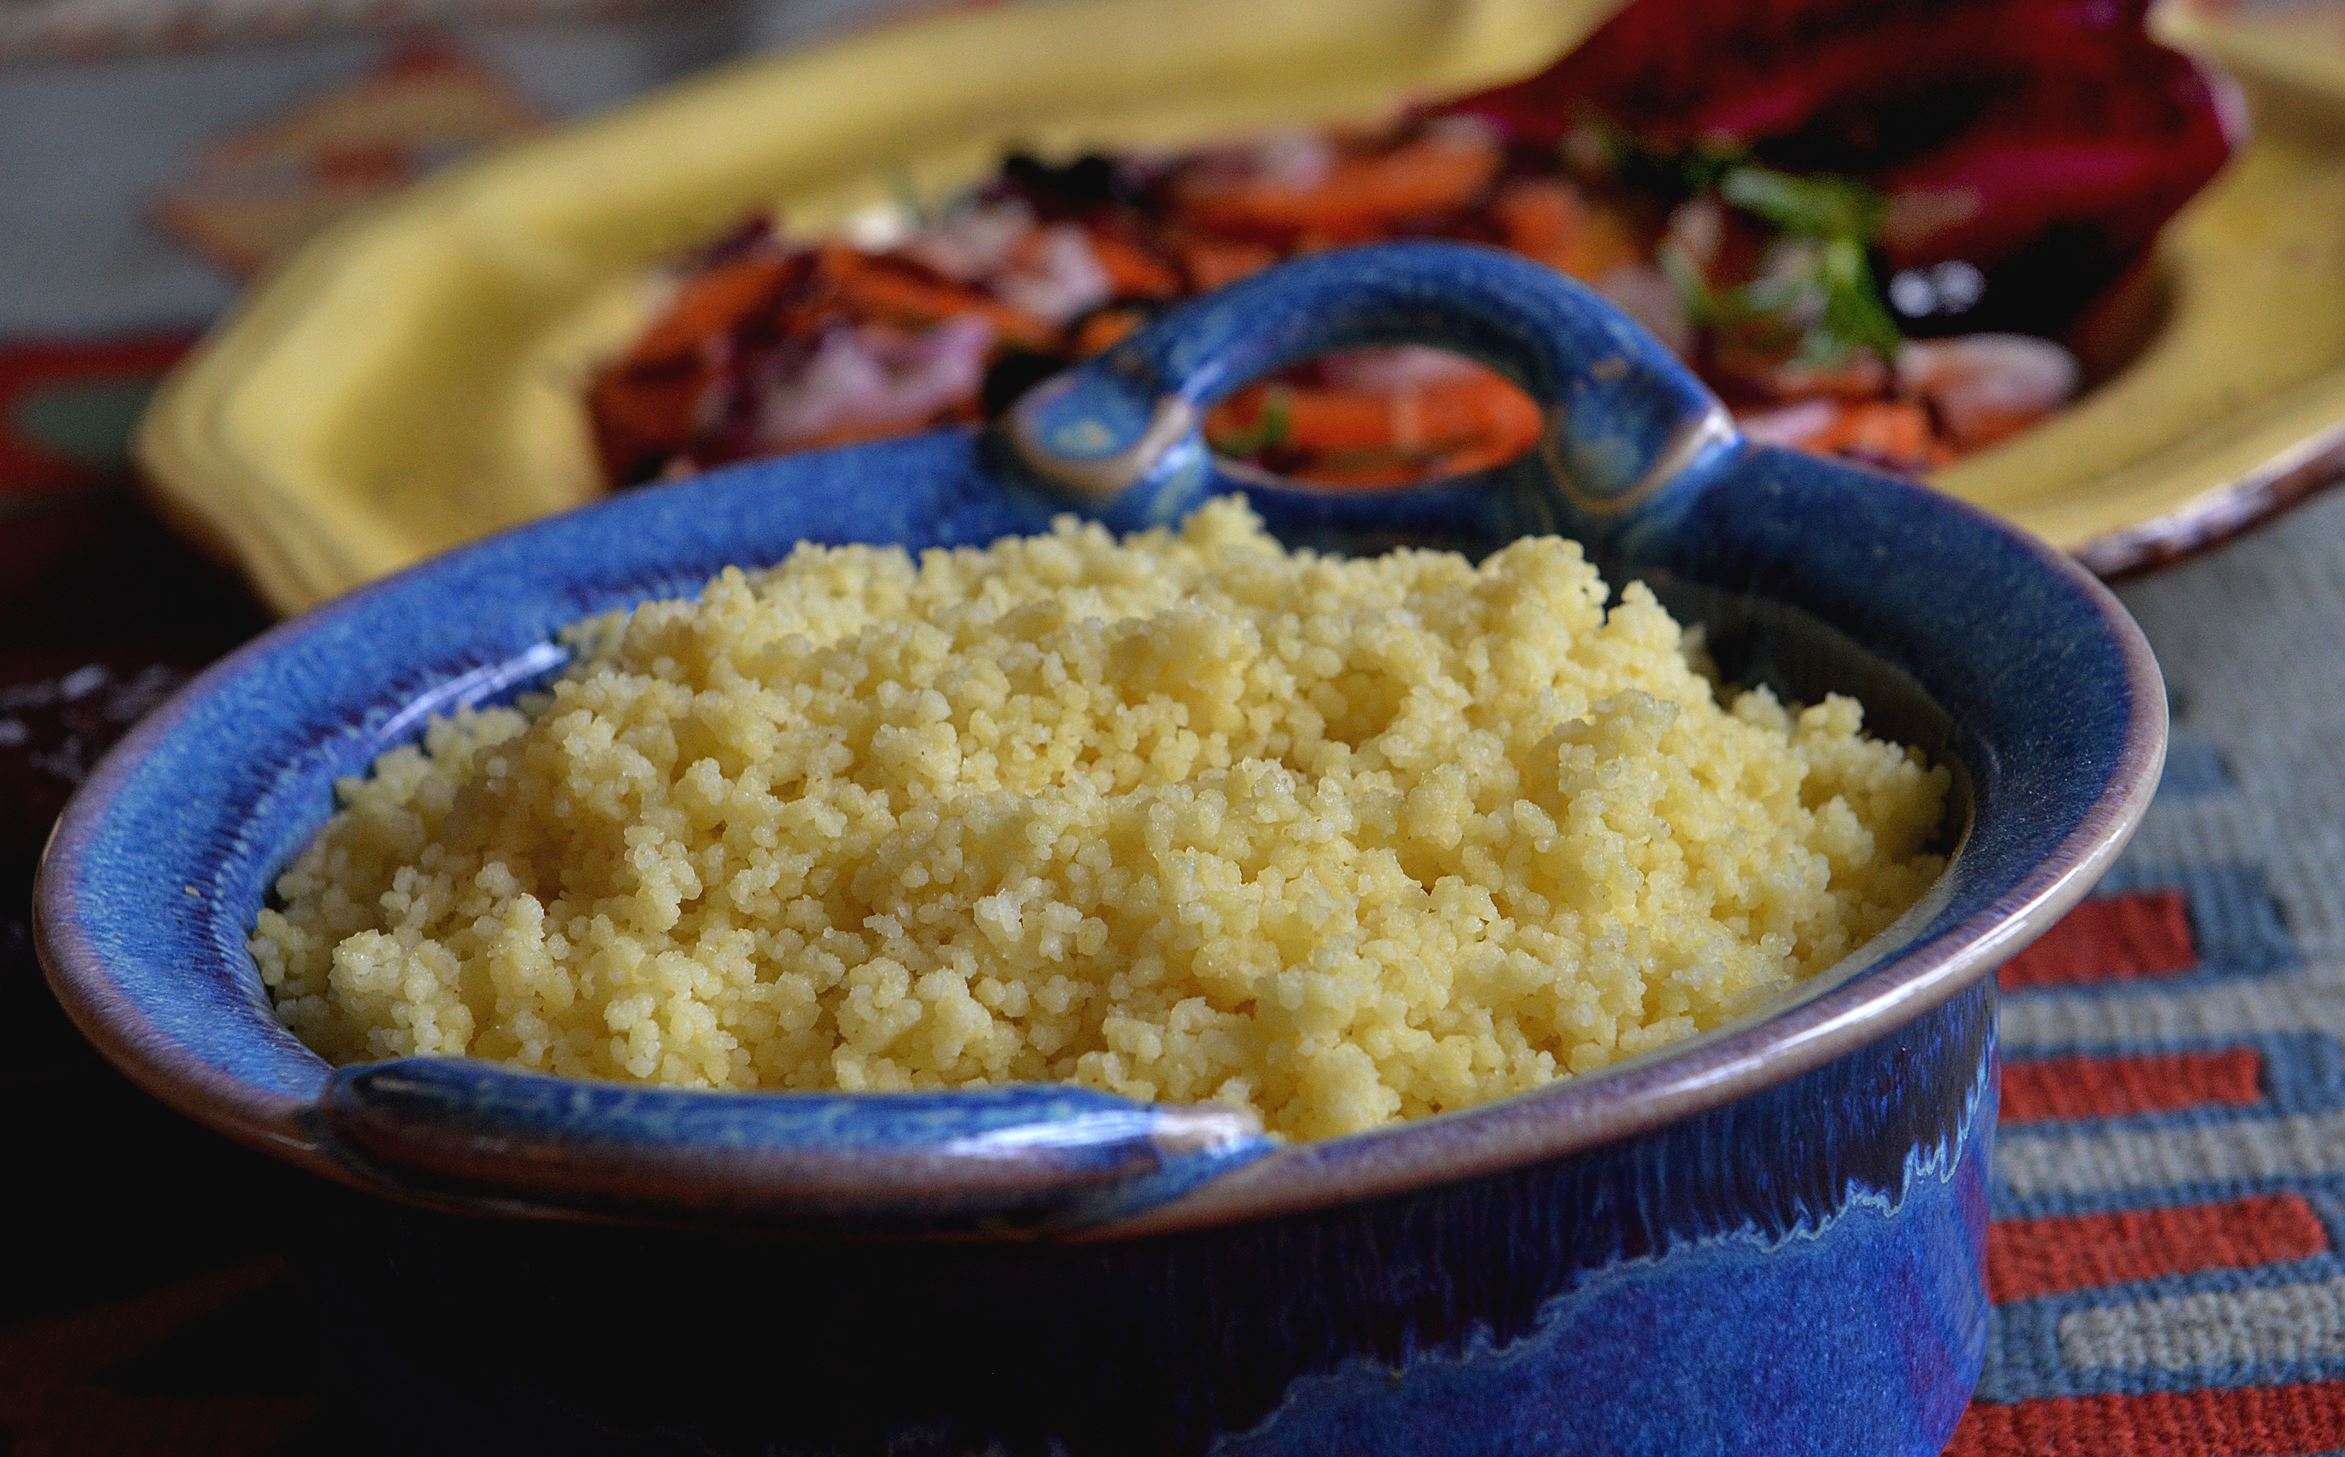 20140407lrtaginefood06-5 Couscous.